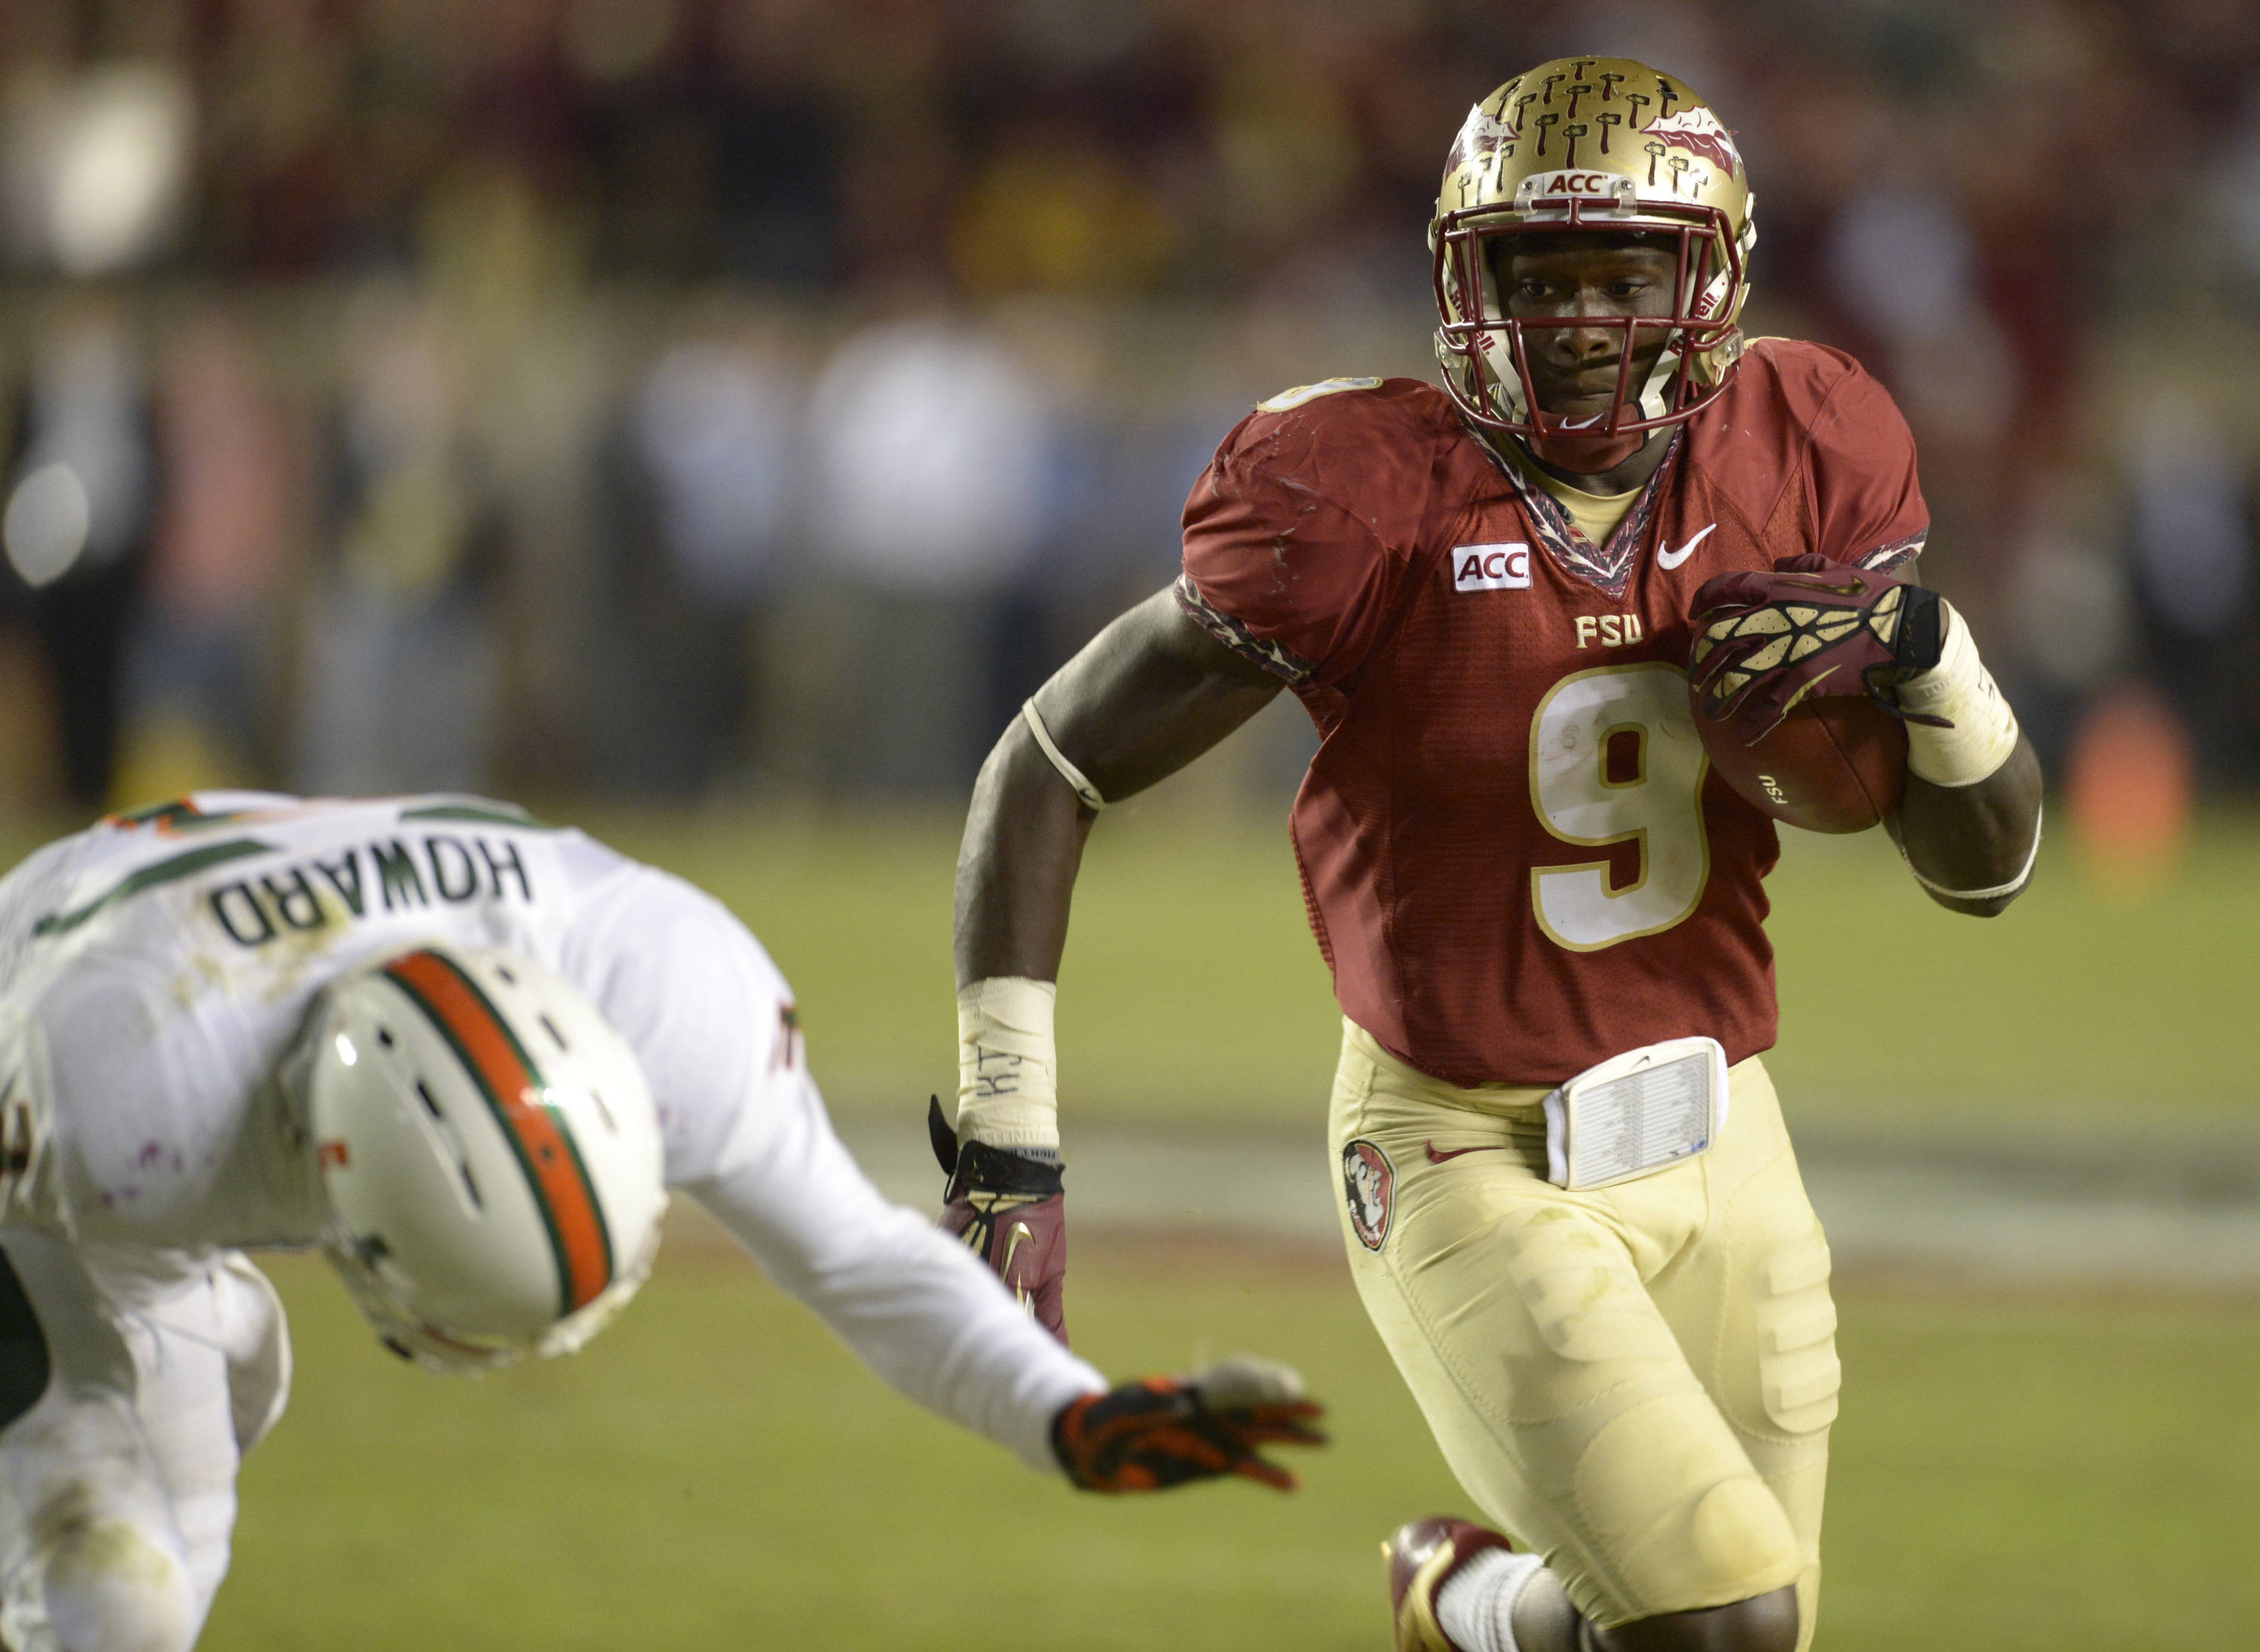 Florida State Seminoles running back Karlos Williams (9) carries past Miami Hurricanes defensive back Tracy Howard (3) during the fourth quarter at Doak Campbell Stadium. The Florida State Seminoles defeated the Miami Hurricanes 41-14. Mandatory Credit: John David Mercer-USA TODAY Sports